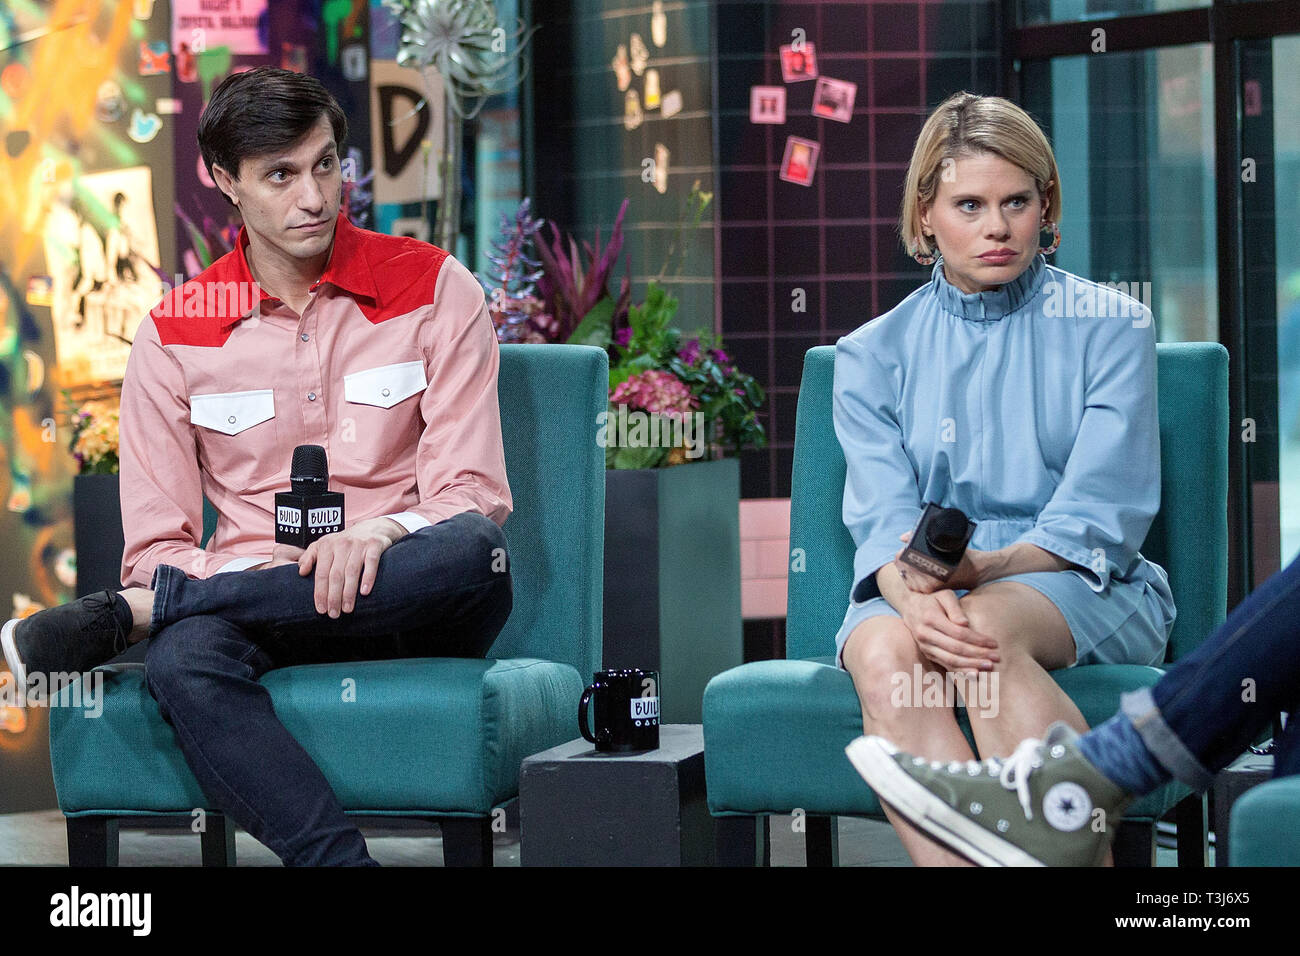 New York, USA. 09 Apr, 2019.  Gideon Glick, and, Celia Keenan-Bolger at The BUILD Series discussing ÒTo Kill a MockingbirdÓ at BUILD Studio on April 09, 2019 in New York, NY. Credit: Steve Mack/S.D. Mack Pictures/Alamy - Stock Image